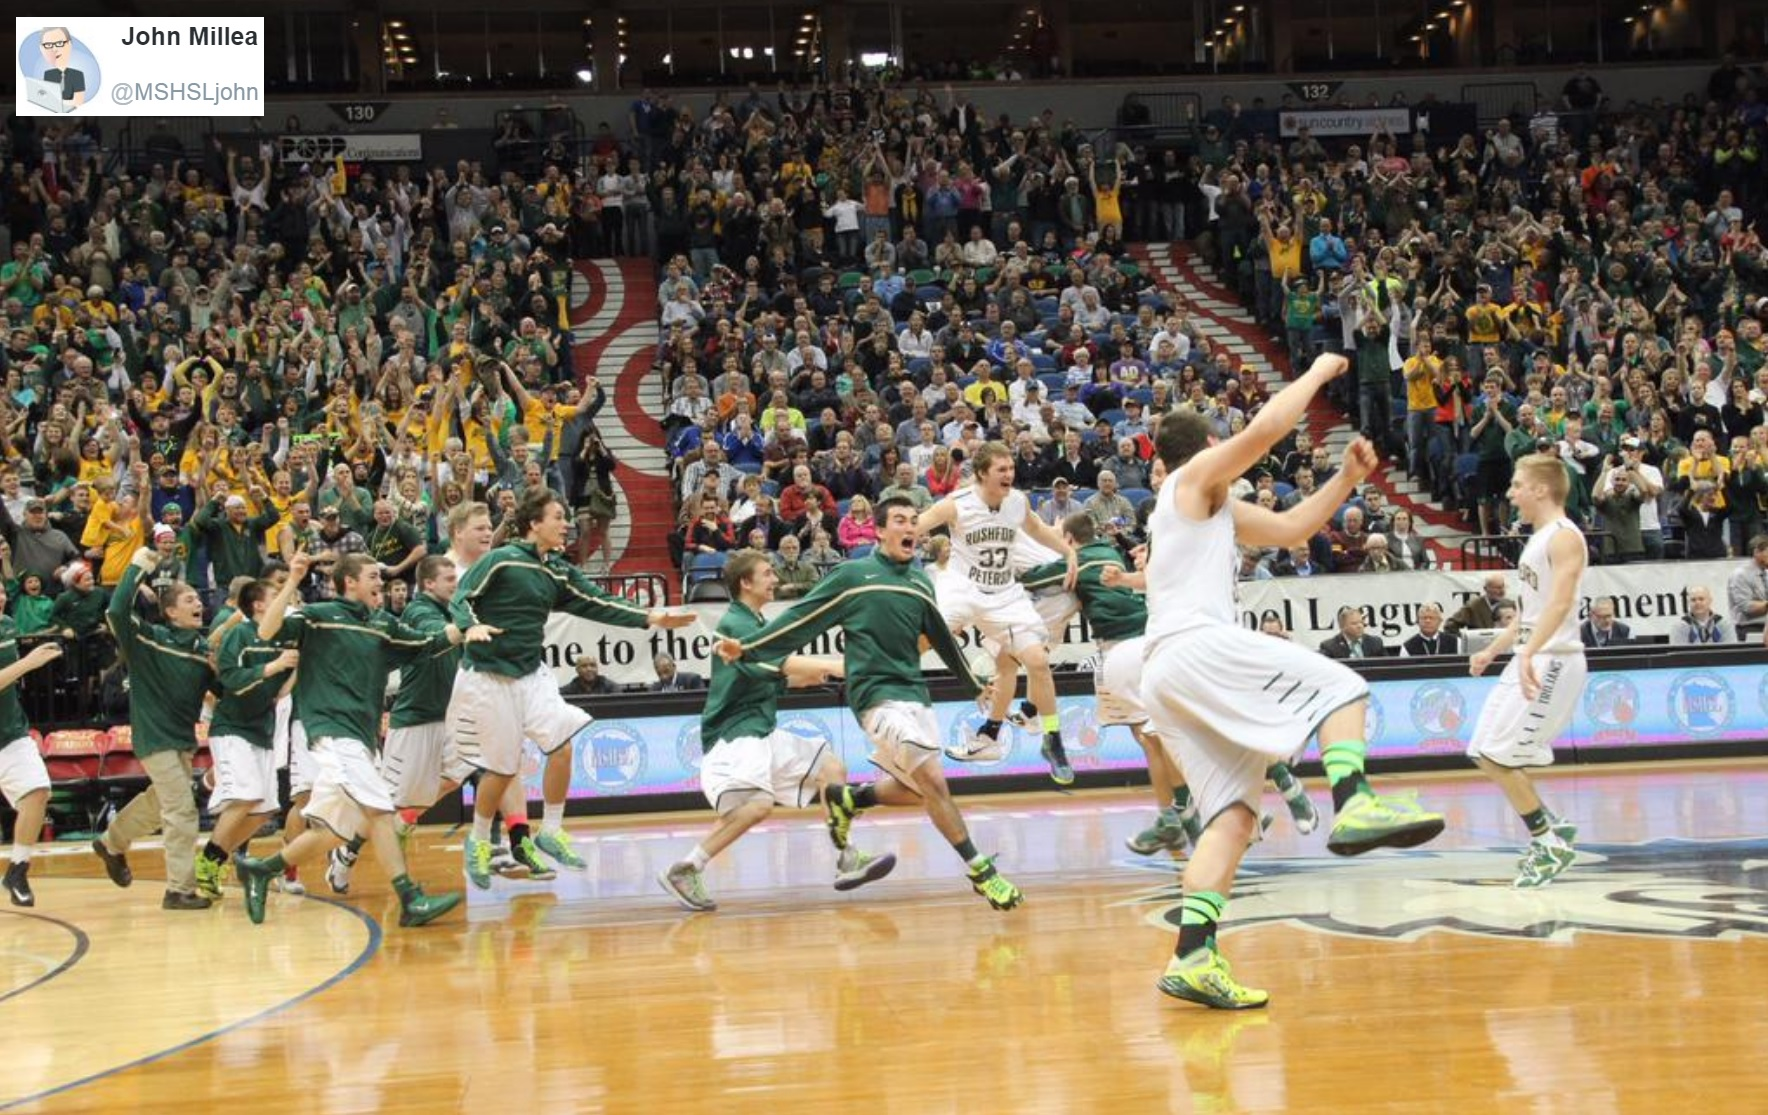 Rushford-Peterson is bringing home another state title